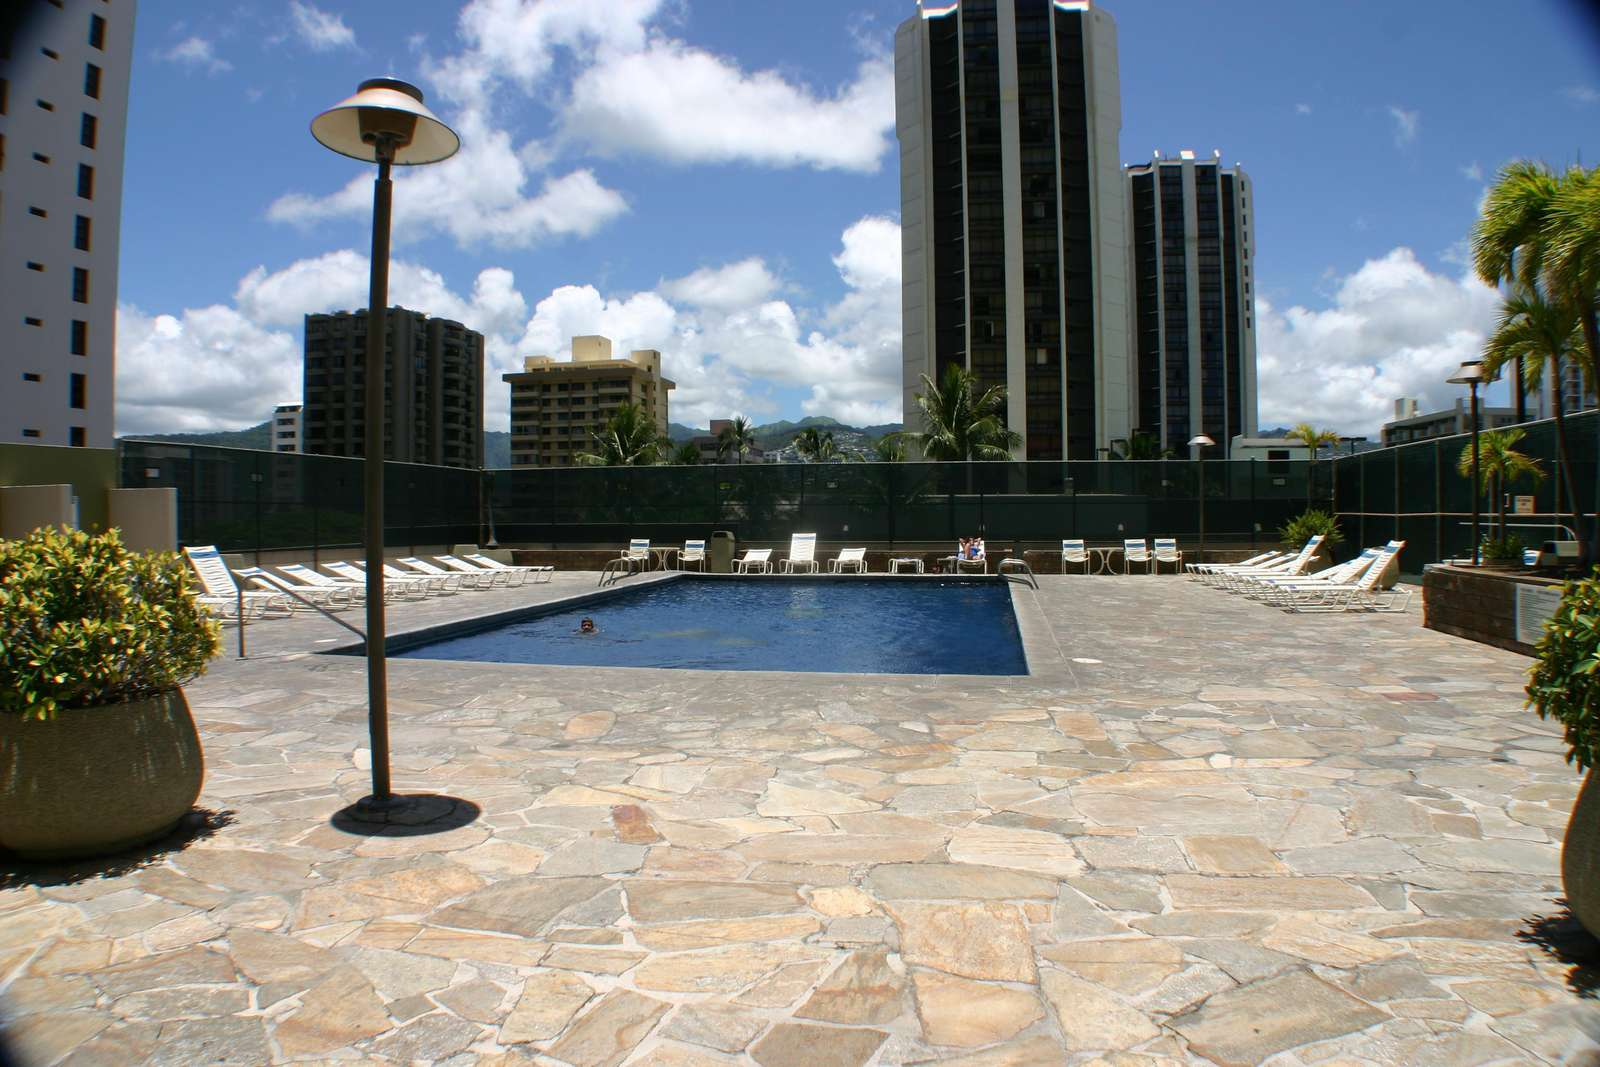 Pool and Recreation Deck